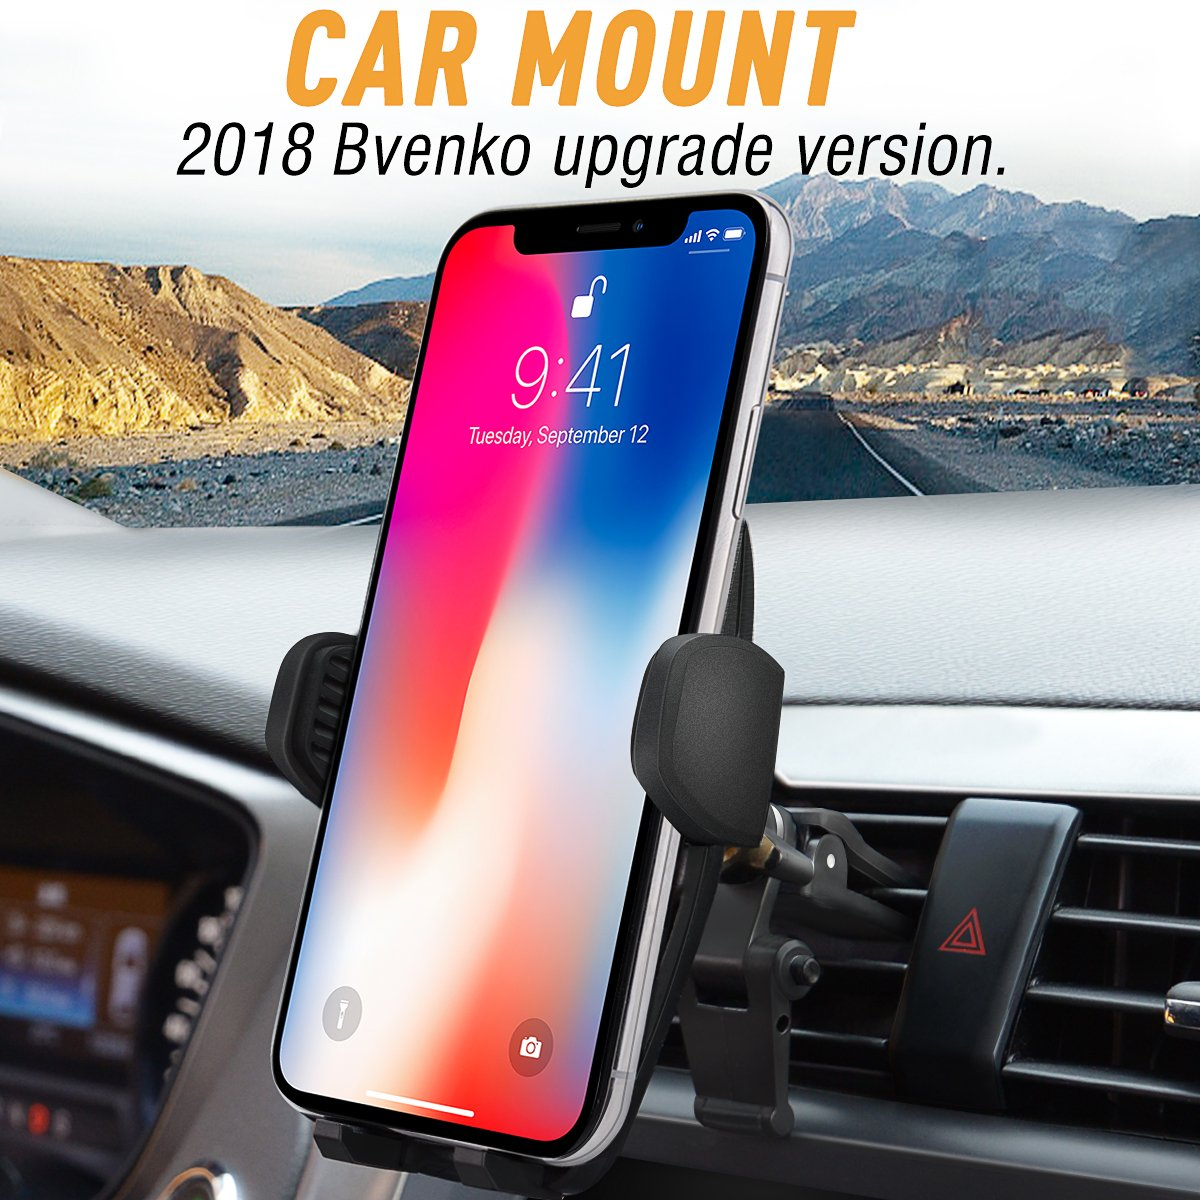 Bvenko Car Mount/Car Holder, Phone Mount/Car Phone Holder Universal Cell Phone Cradle Gravity Self-Locking Design Anti-Skid Base iPhone X/8/7Plus/6,Galaxy S8,Google,LG,Huawei etc